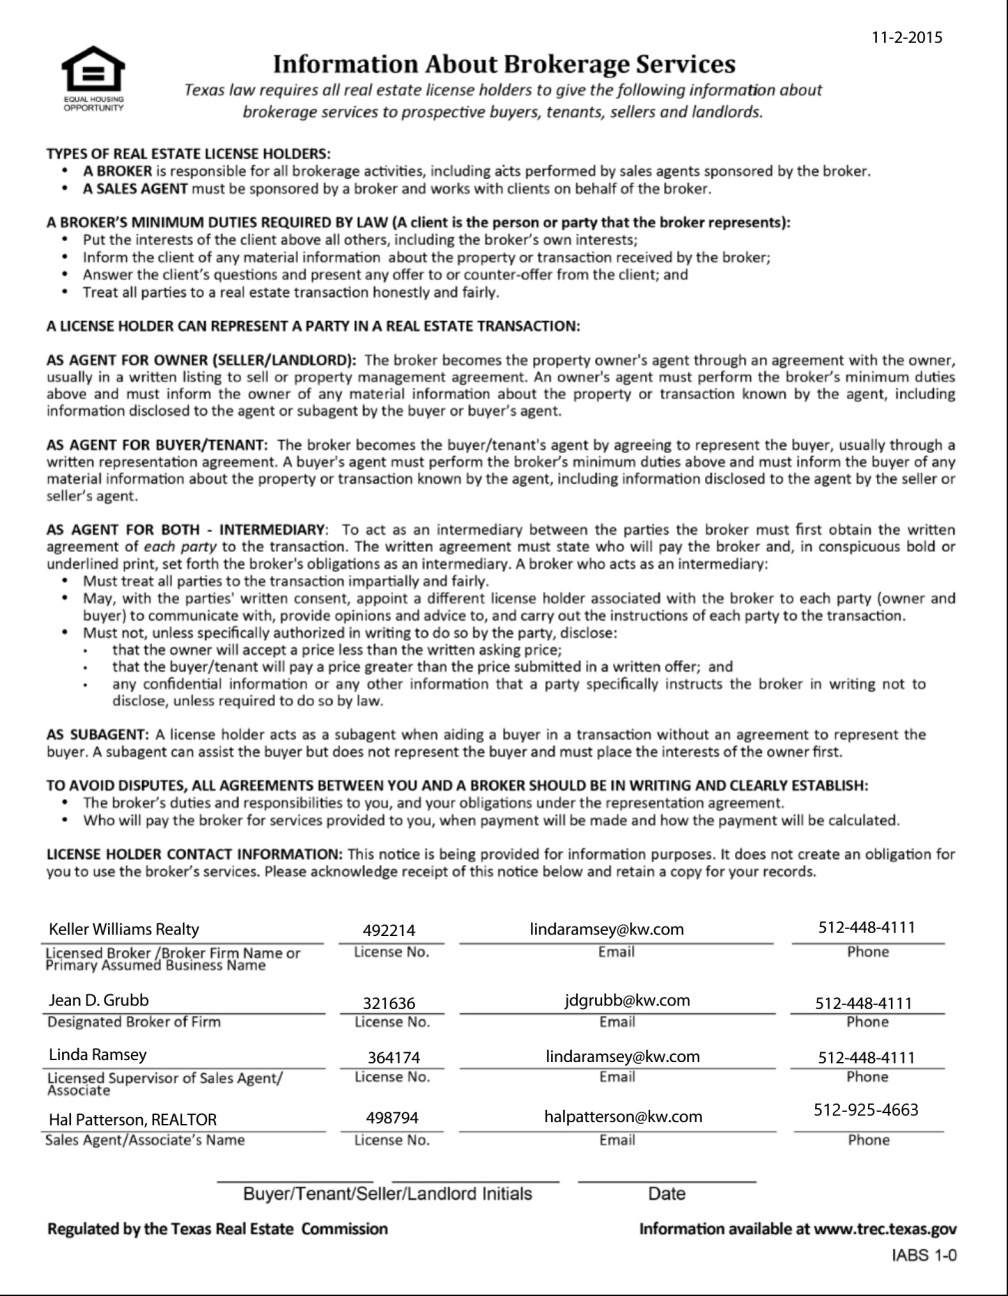 Texas Real Estate Commission Information About Brokerage Services Form